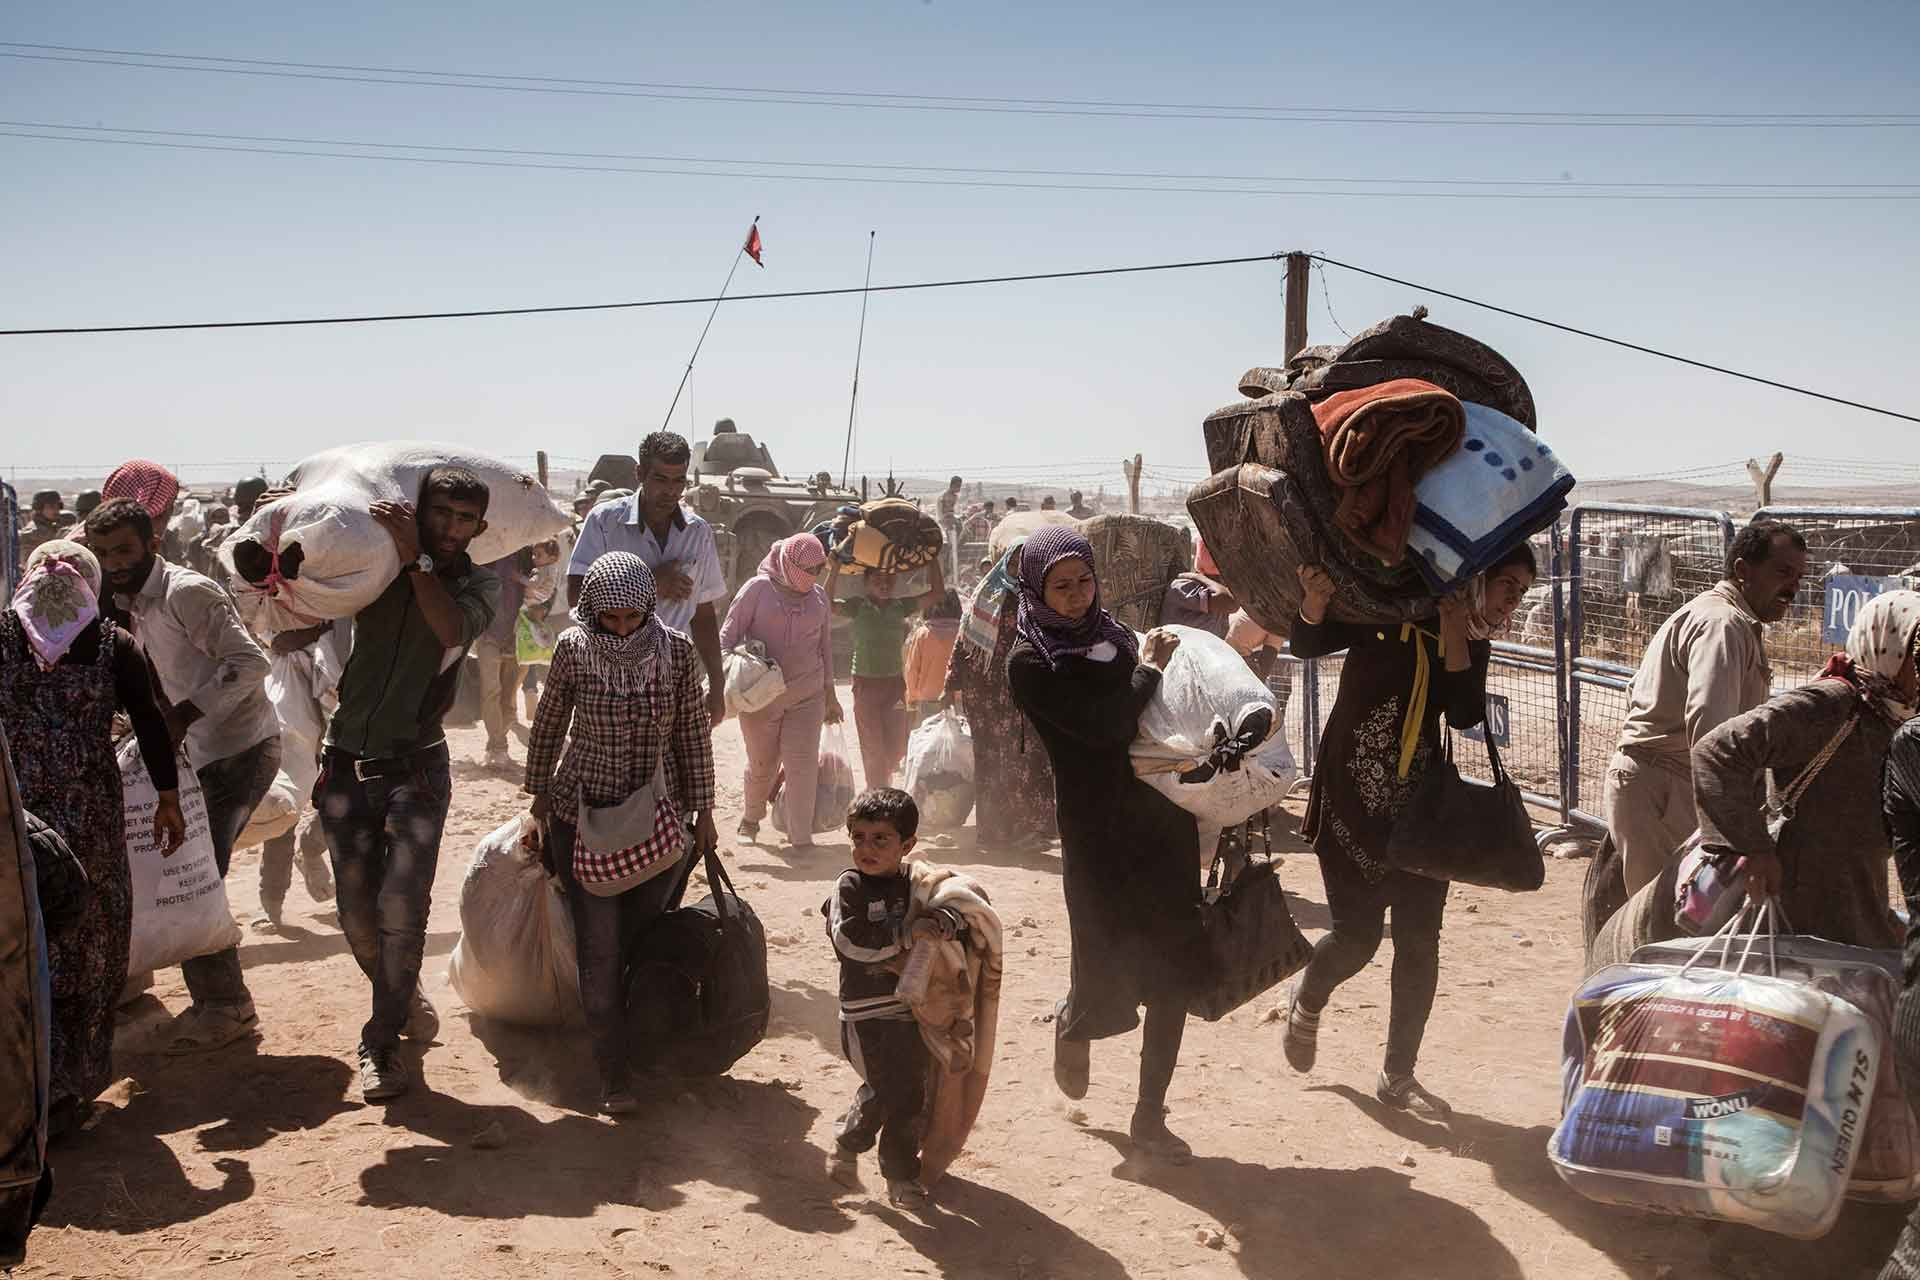 Refugees traveling by foot